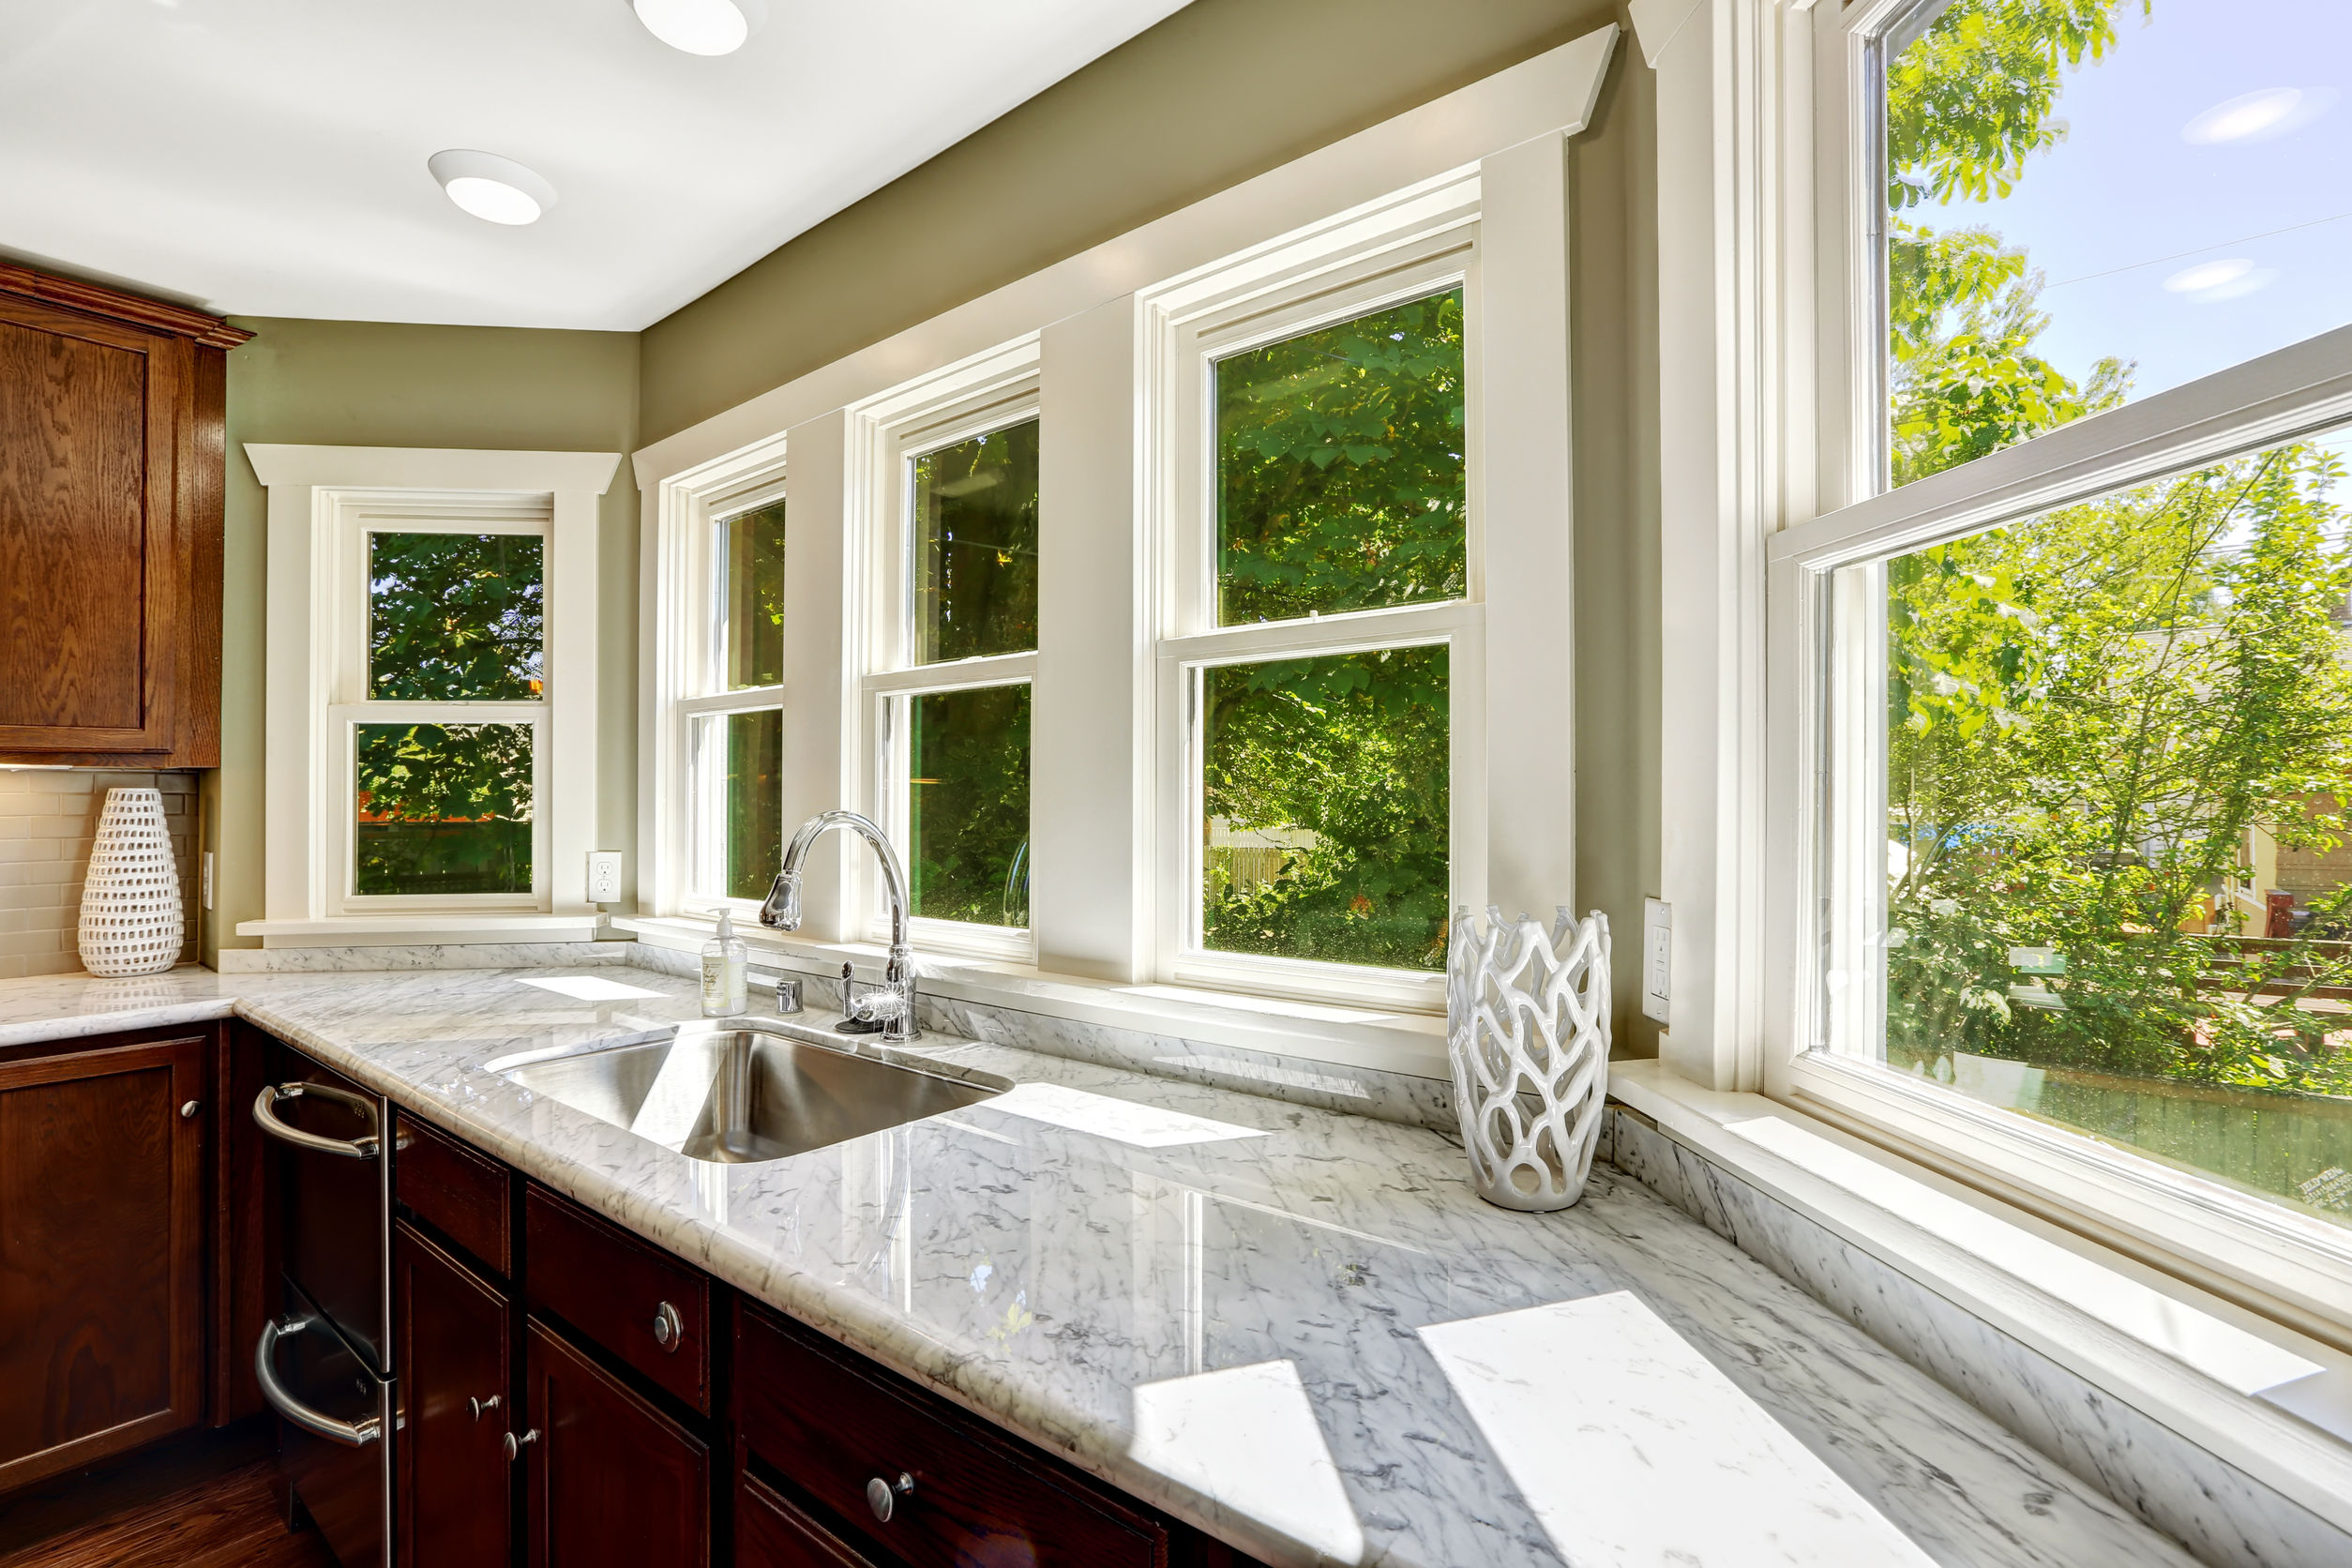 31386060 - beautiful kitchen cabinet with marble top and steel sink